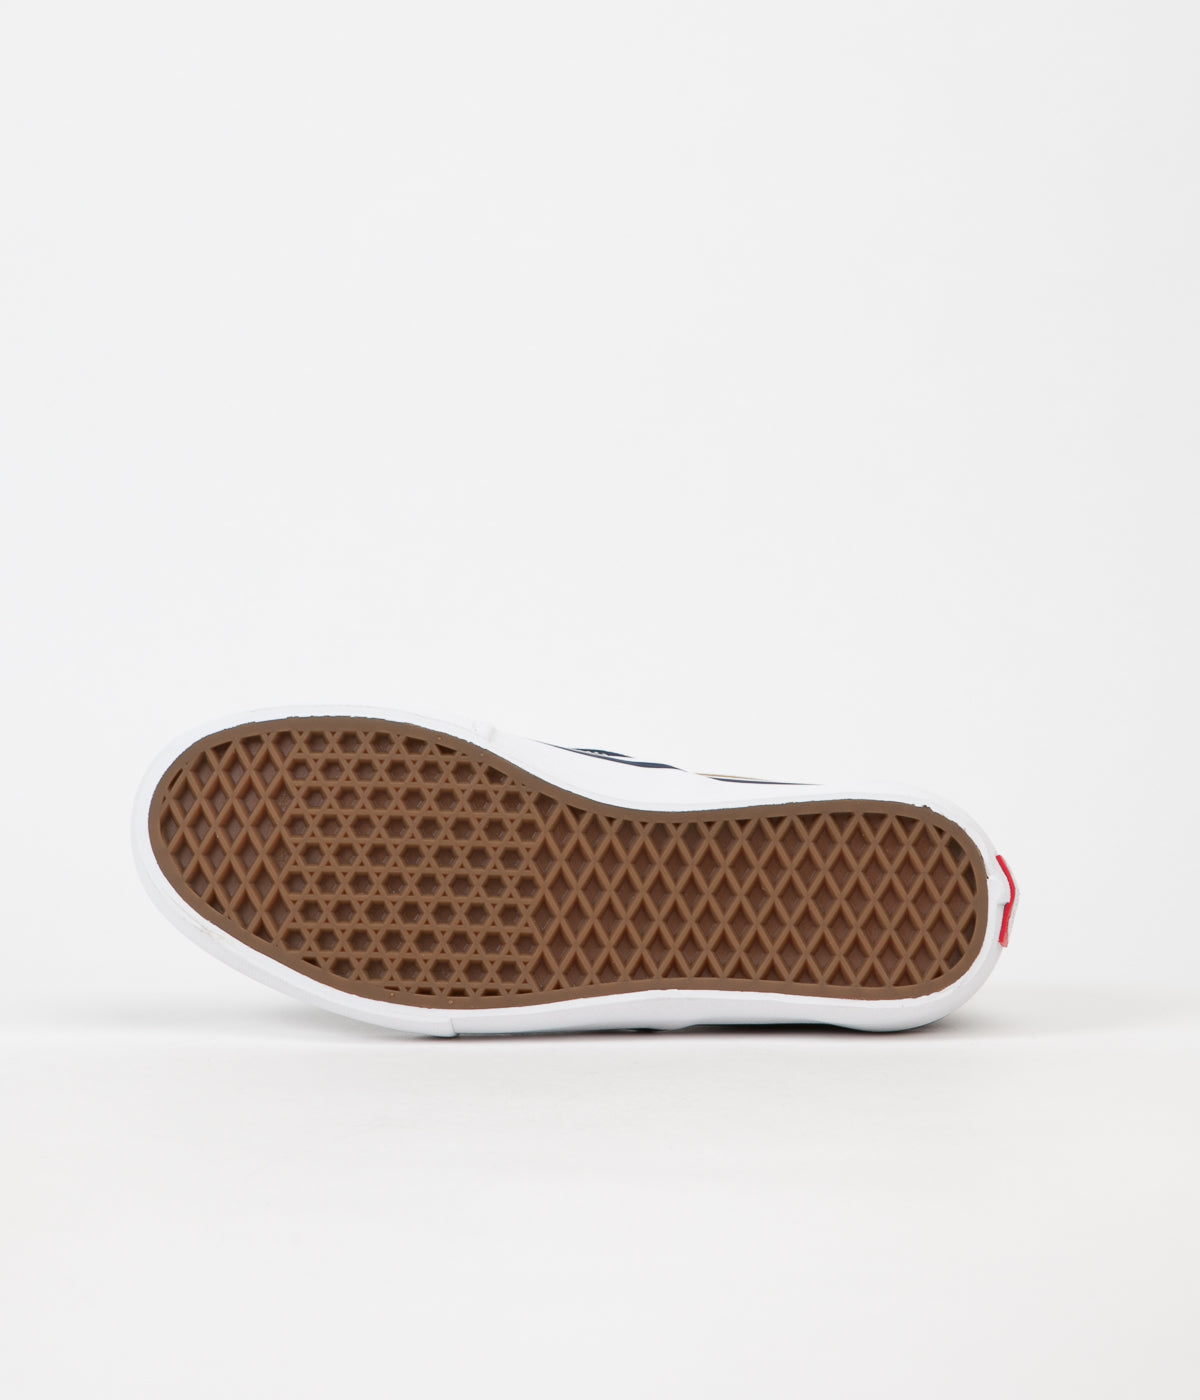 Vans Slip On Pro Shoes - Dress Blues / Medal Bronze